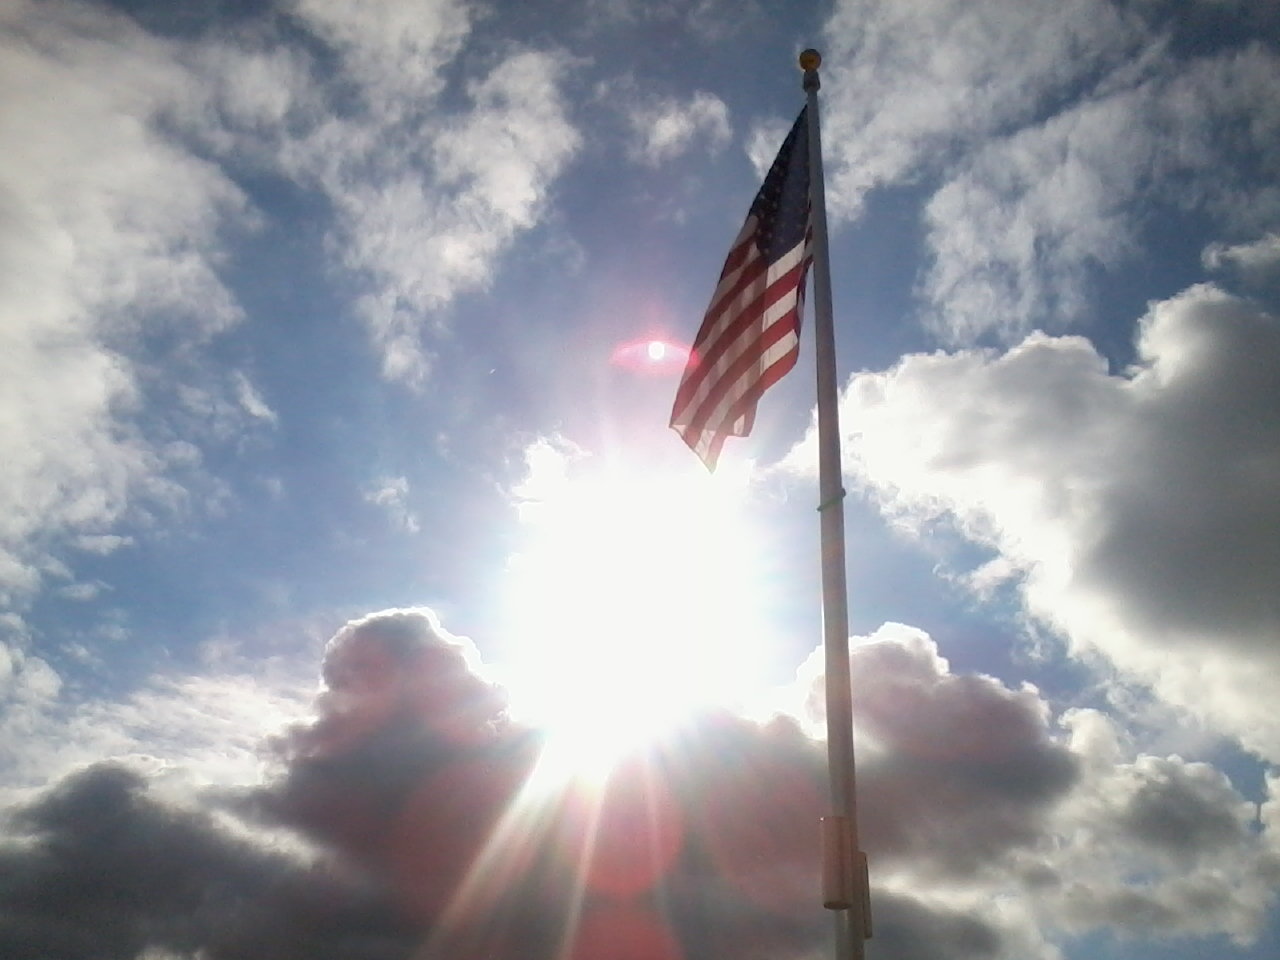 http://2.bp.blogspot.com/-nb4M5iYo5tE/T_RCYgfJTfI/AAAAAAAAJ34/8p4gPDauv2Y/s1600/Flag_and_sun_thorugh_clouds.jpeg